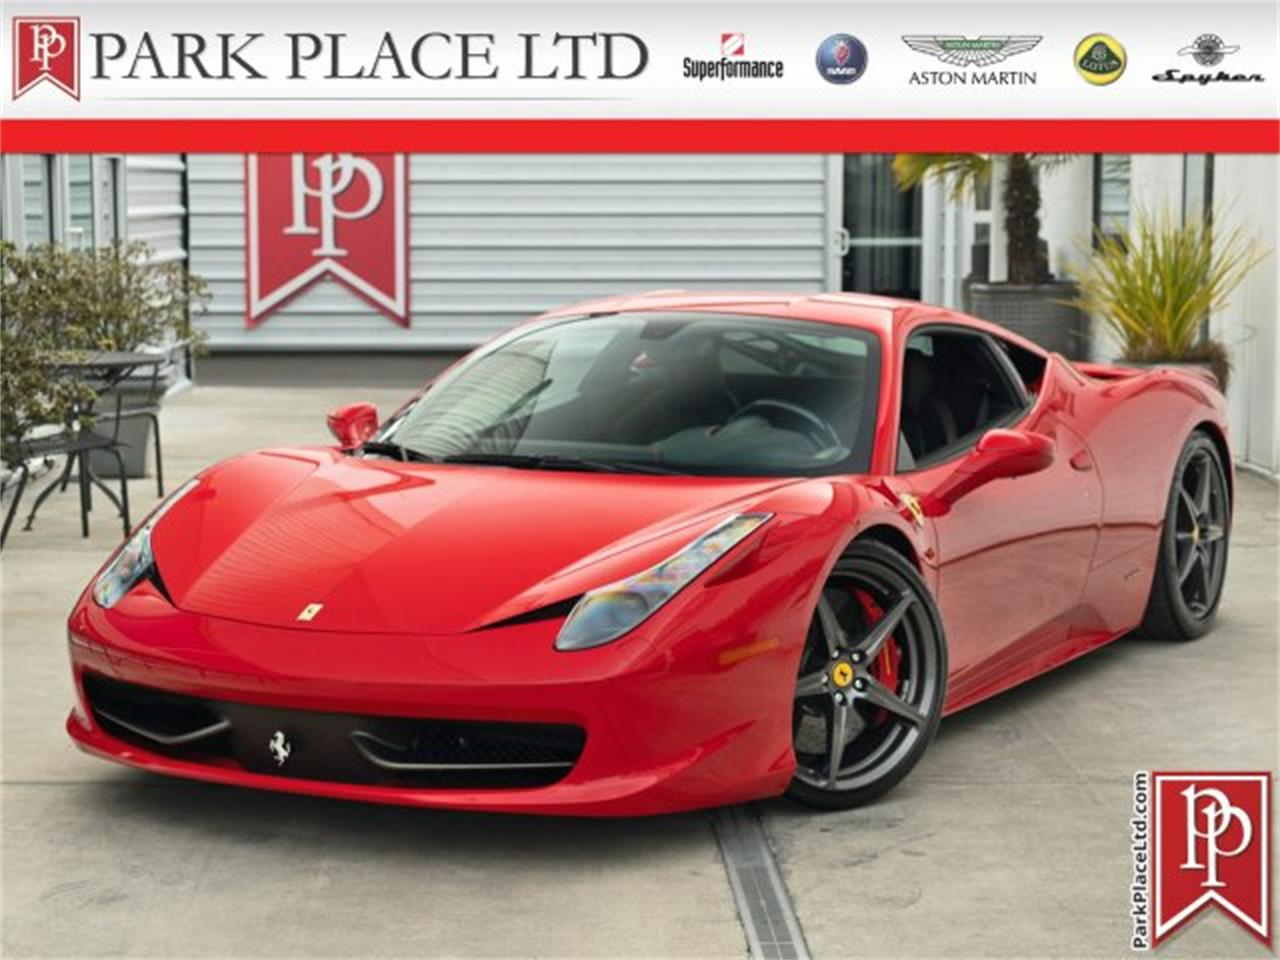 Large Picture of 2015 Ferrari 458 - $209,950.00 Offered by Park Place Ltd - PO5X